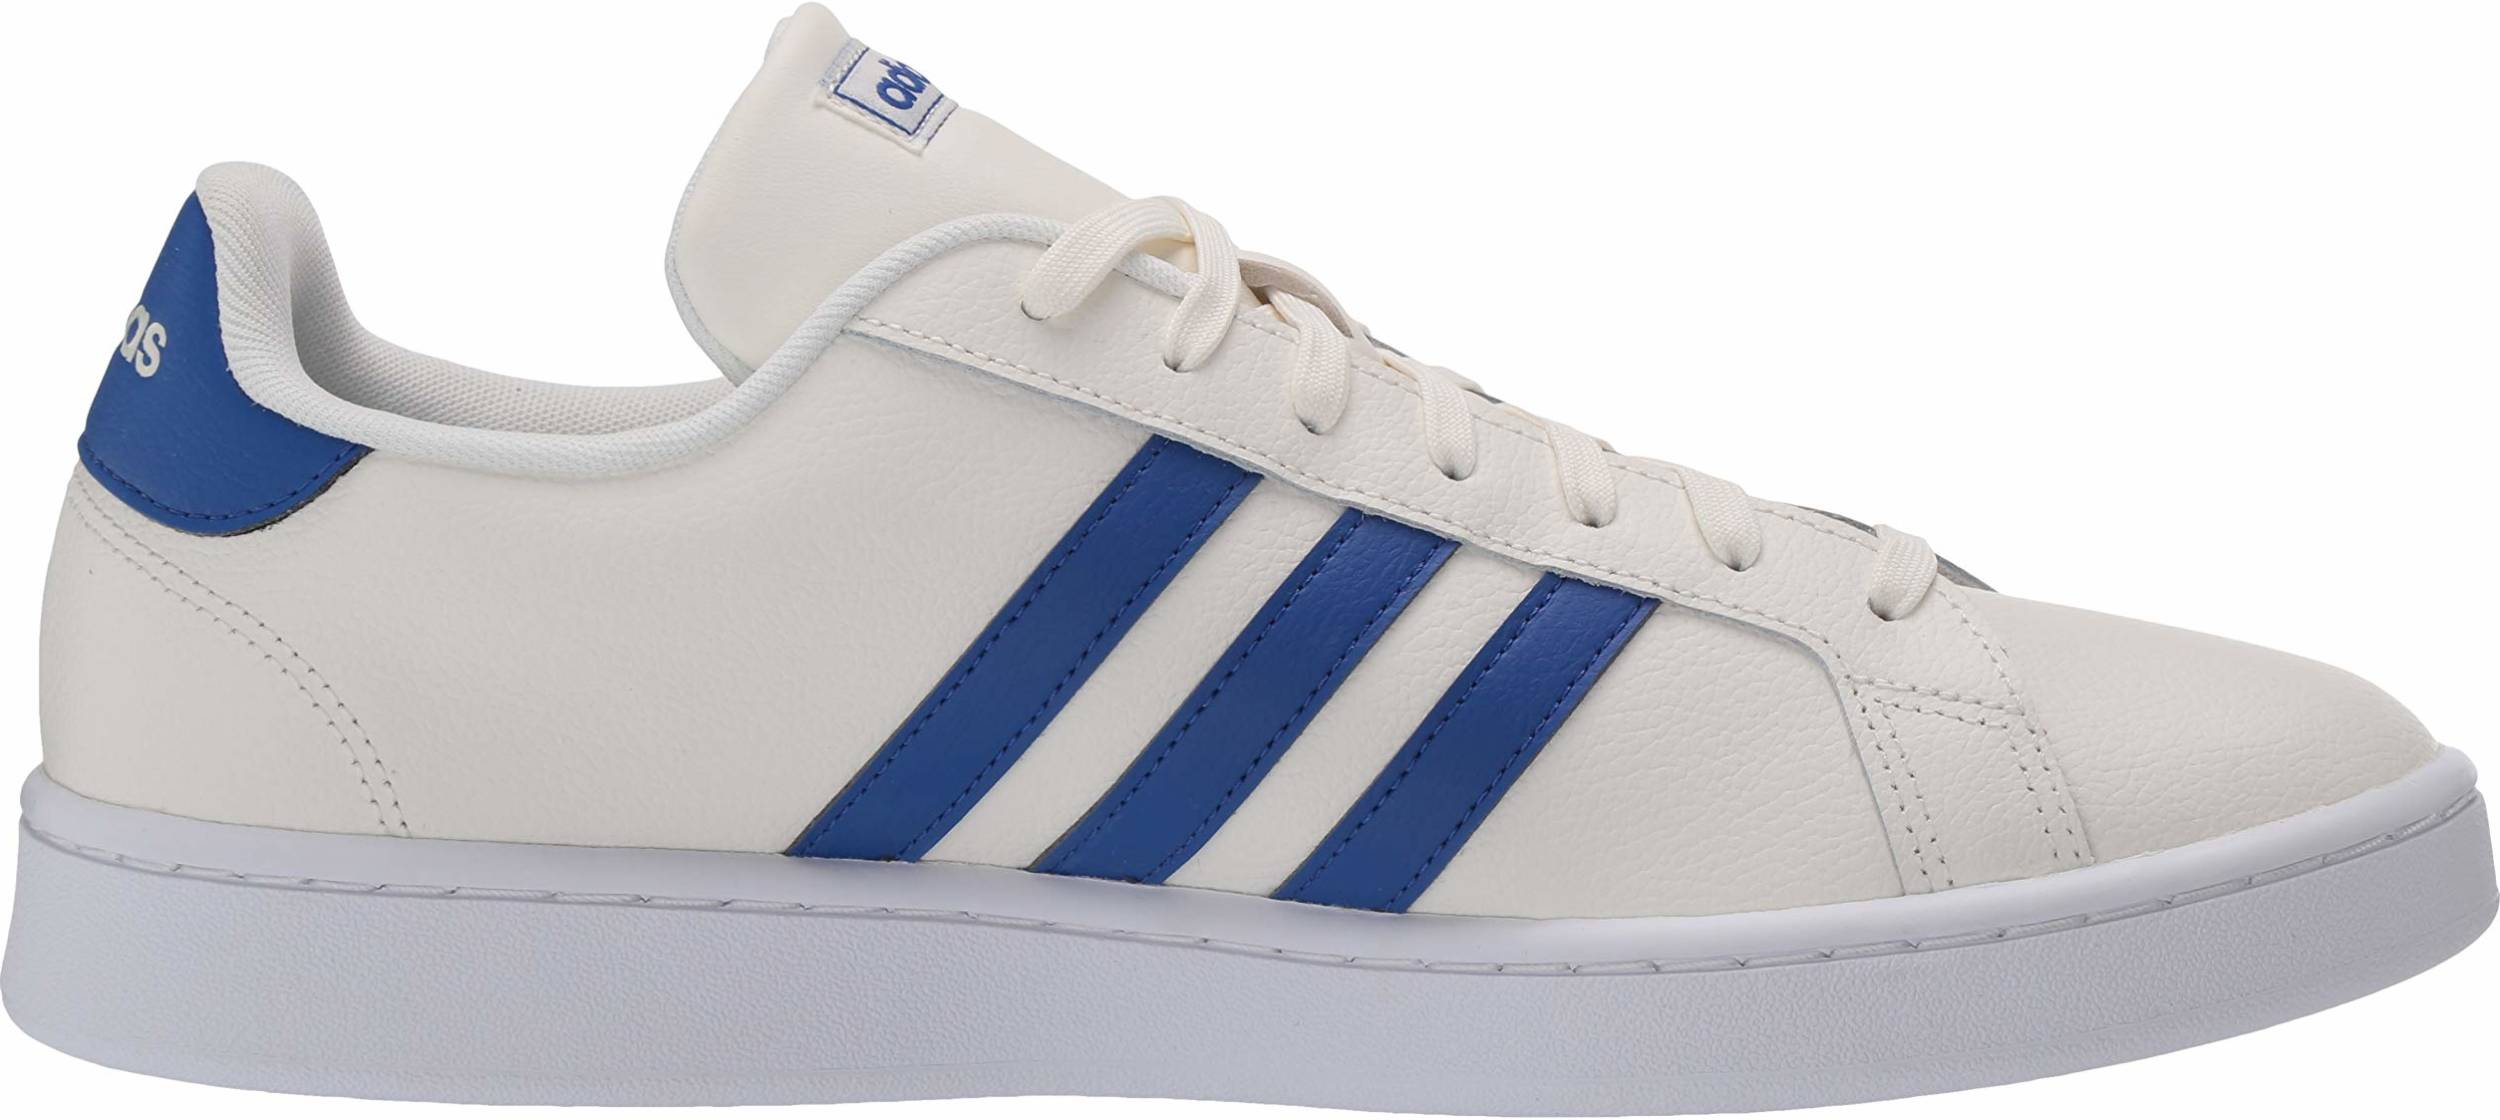 Save 54% on Adidas Cheap Sneakers (50